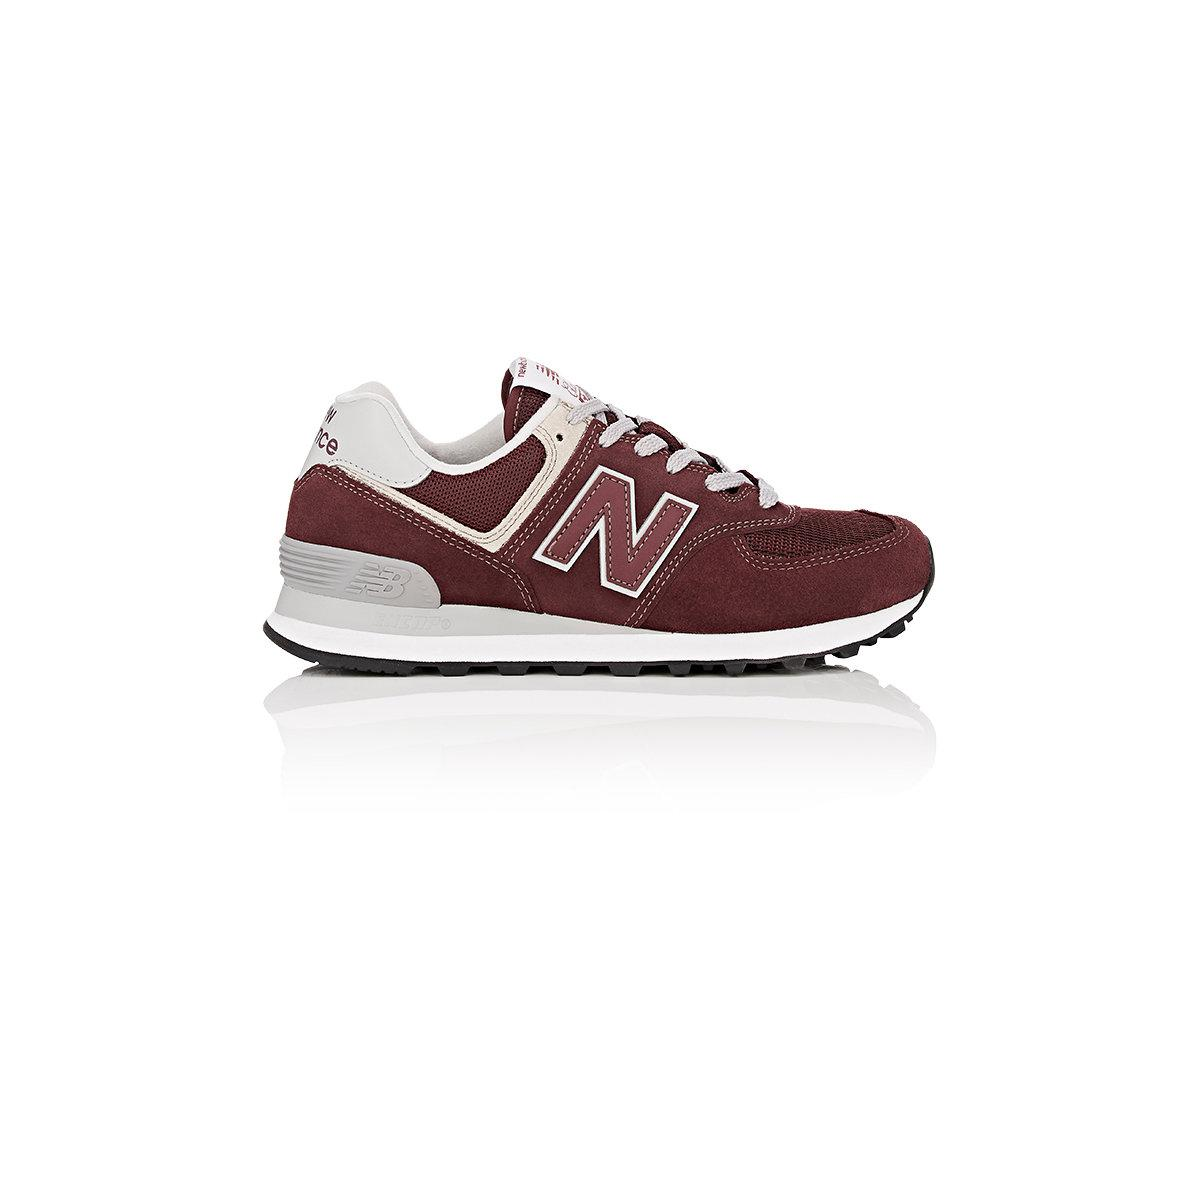 596b100b1232a New Balance - Multicolor 574 Classic Suede & Mesh Sneakers - Lyst